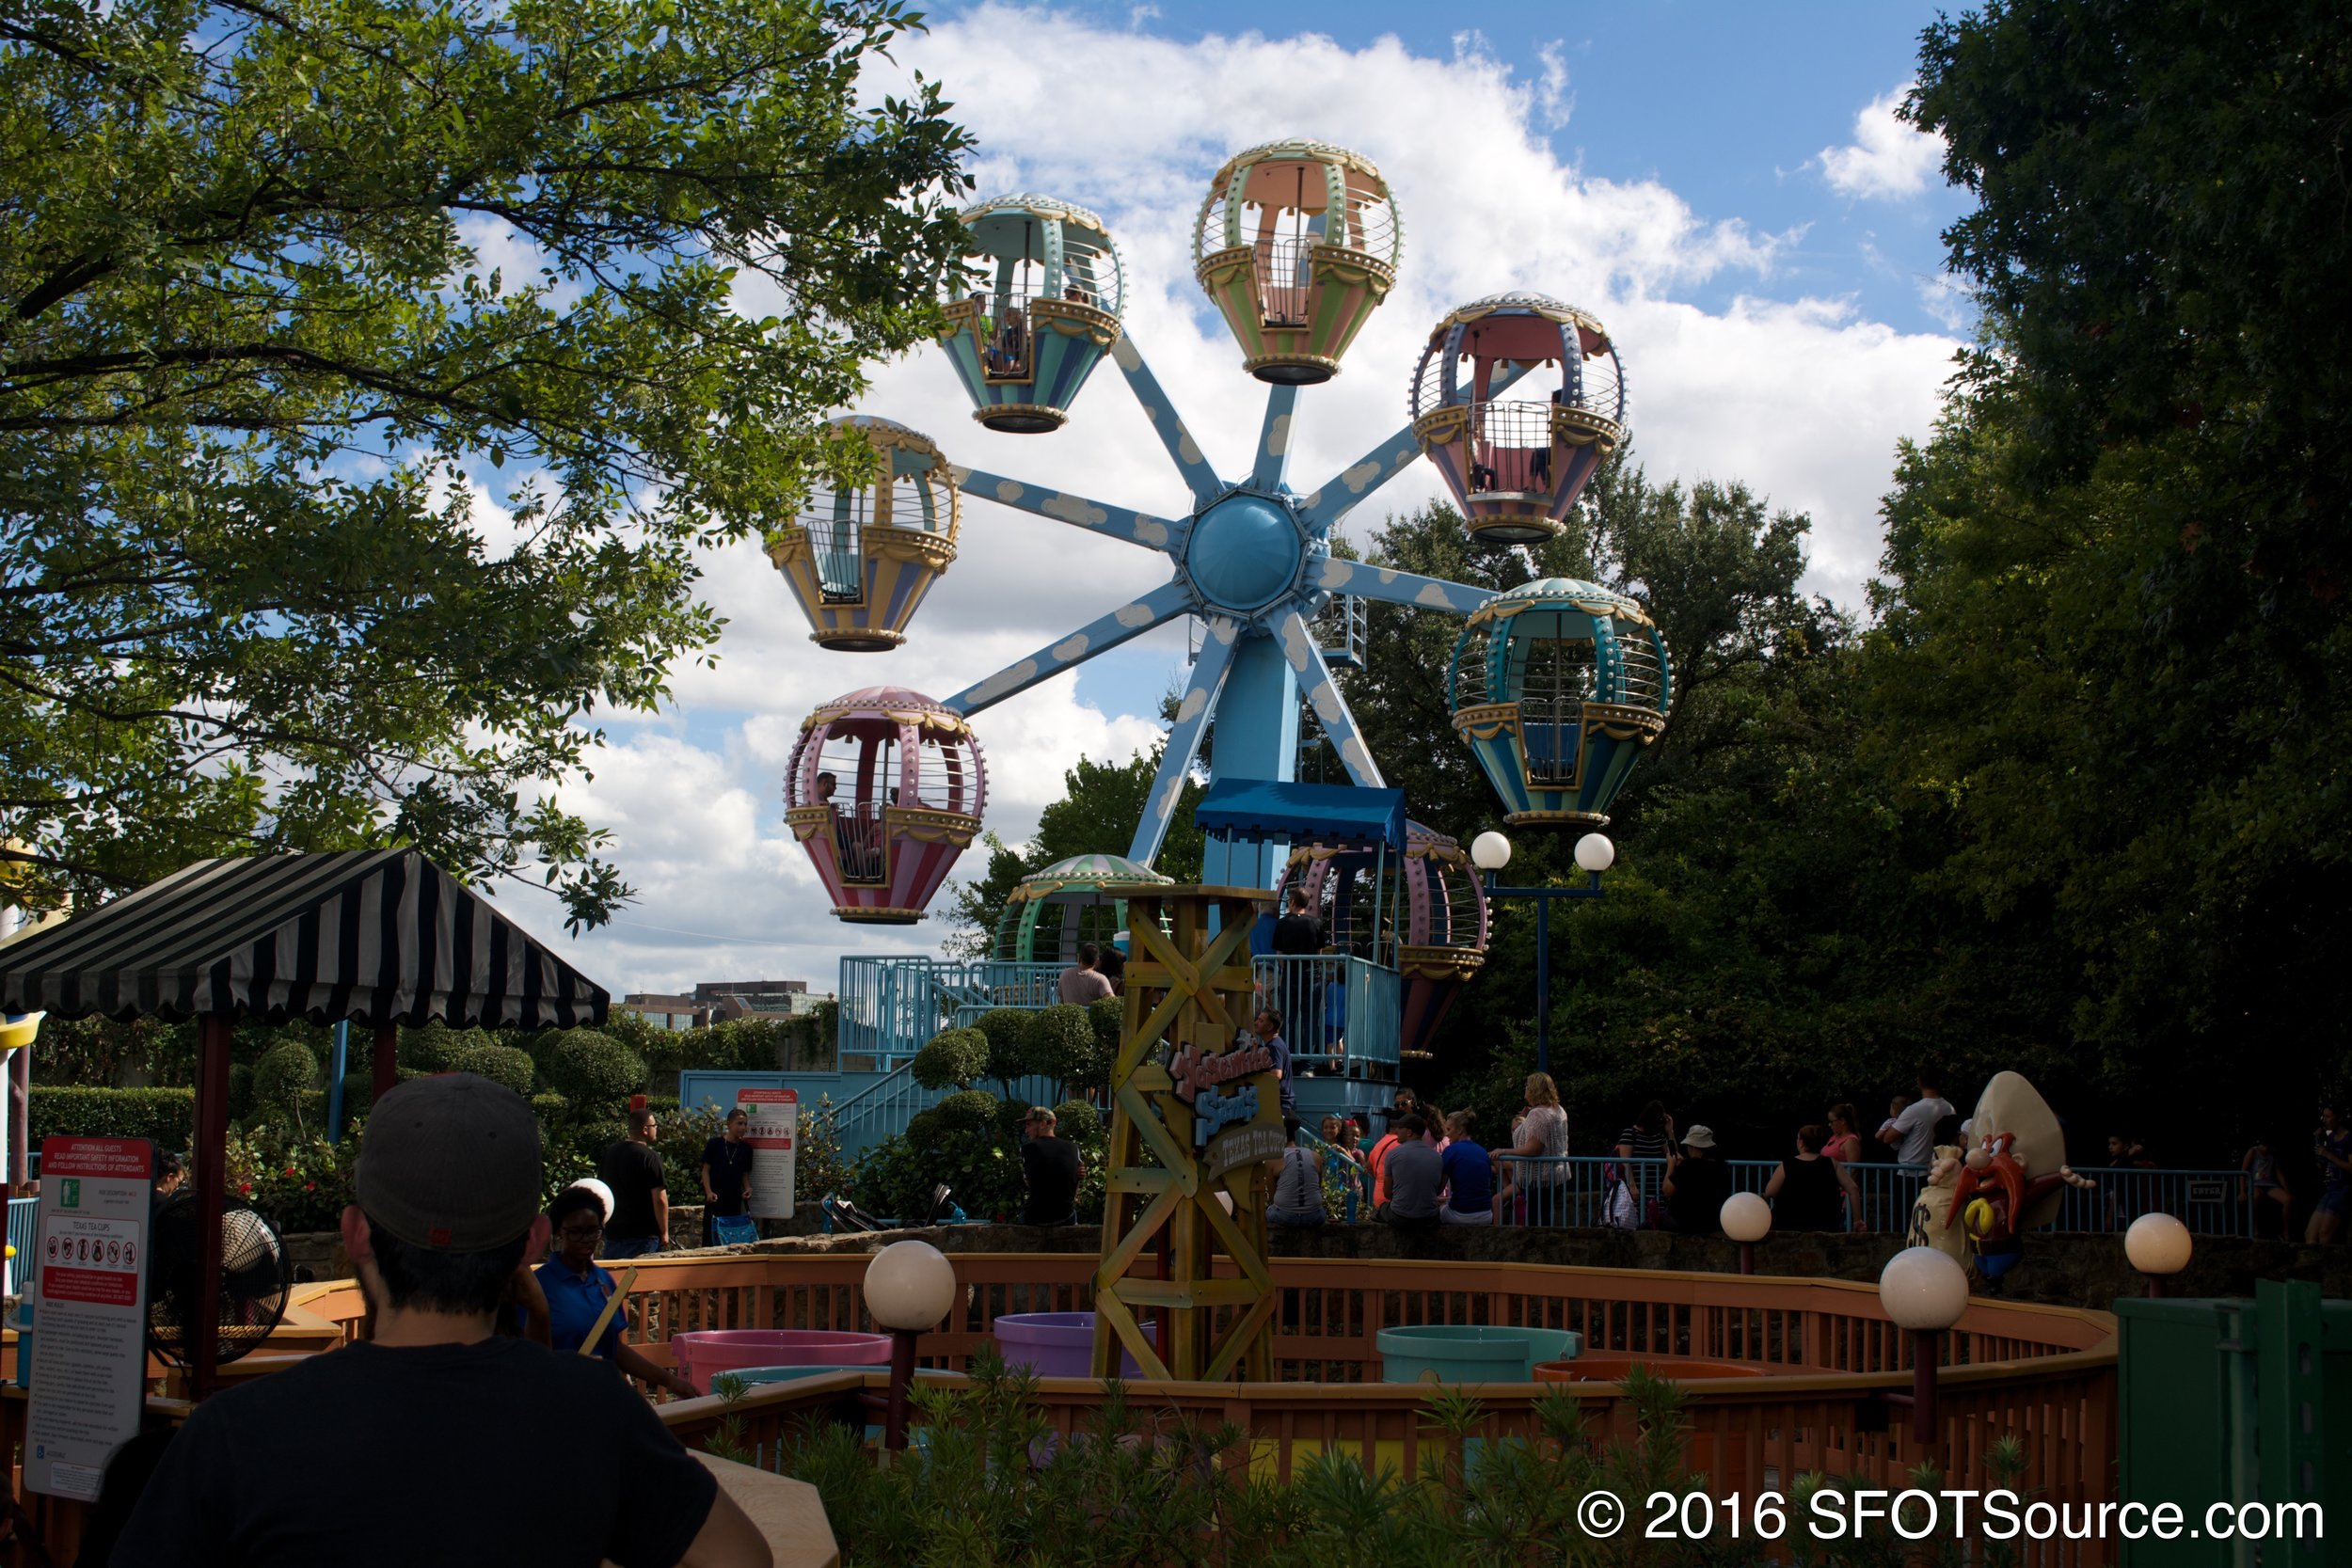 This attraction is a mini ferris wheel.